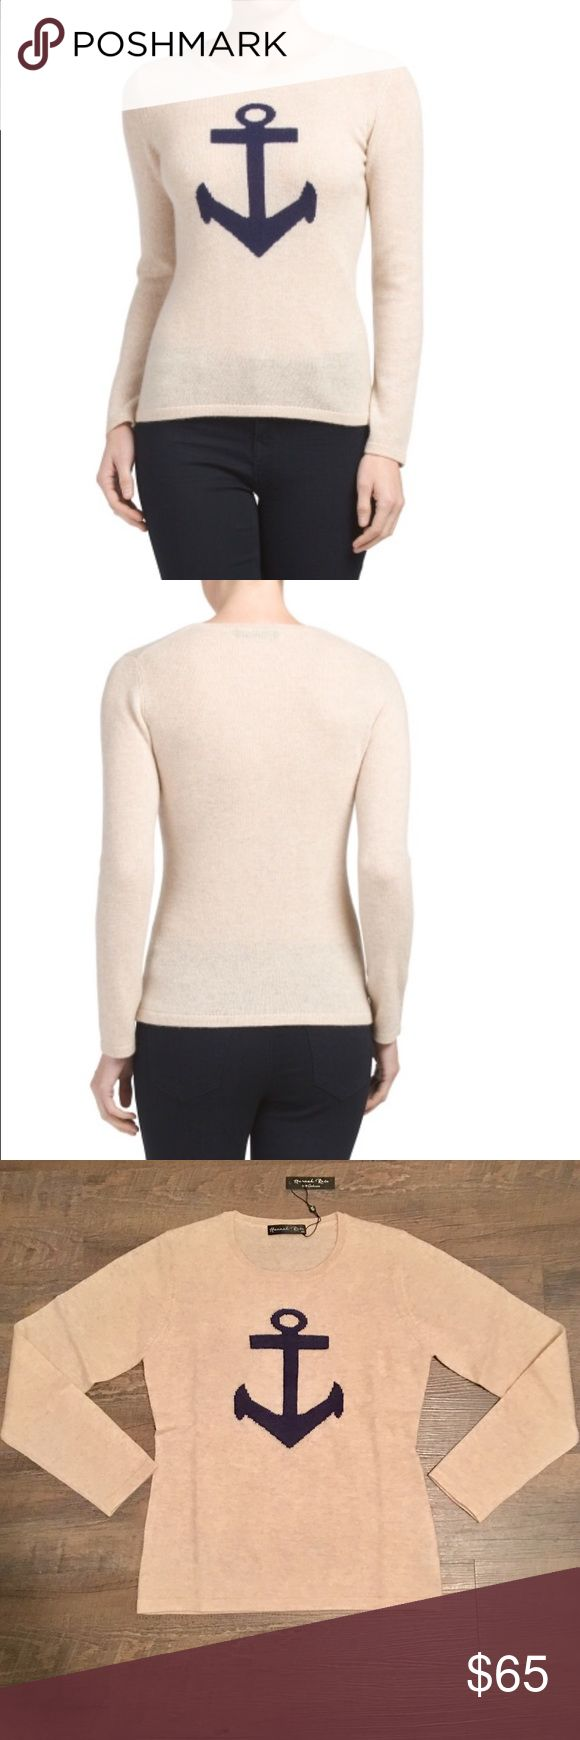 """Tan Anchor Cashmere Sweater Hannah Rose Instarsia Buttery-soft 100% cashmere sweater by Hannah Rose!  Cream/Tan """"Dune"""" color with navy blue Anchor  Brand new with tags!  Retails new for $104!  Size Medium  MEASUREMENTS  Bust 34""""  Shoulder to Shoulder 14-1/2""""  Shoulder to Hem 23""""  Hem 35""""  Sleeve 23-1/2"""" Hannah Rose Sweaters Crew & Scoop Necks"""